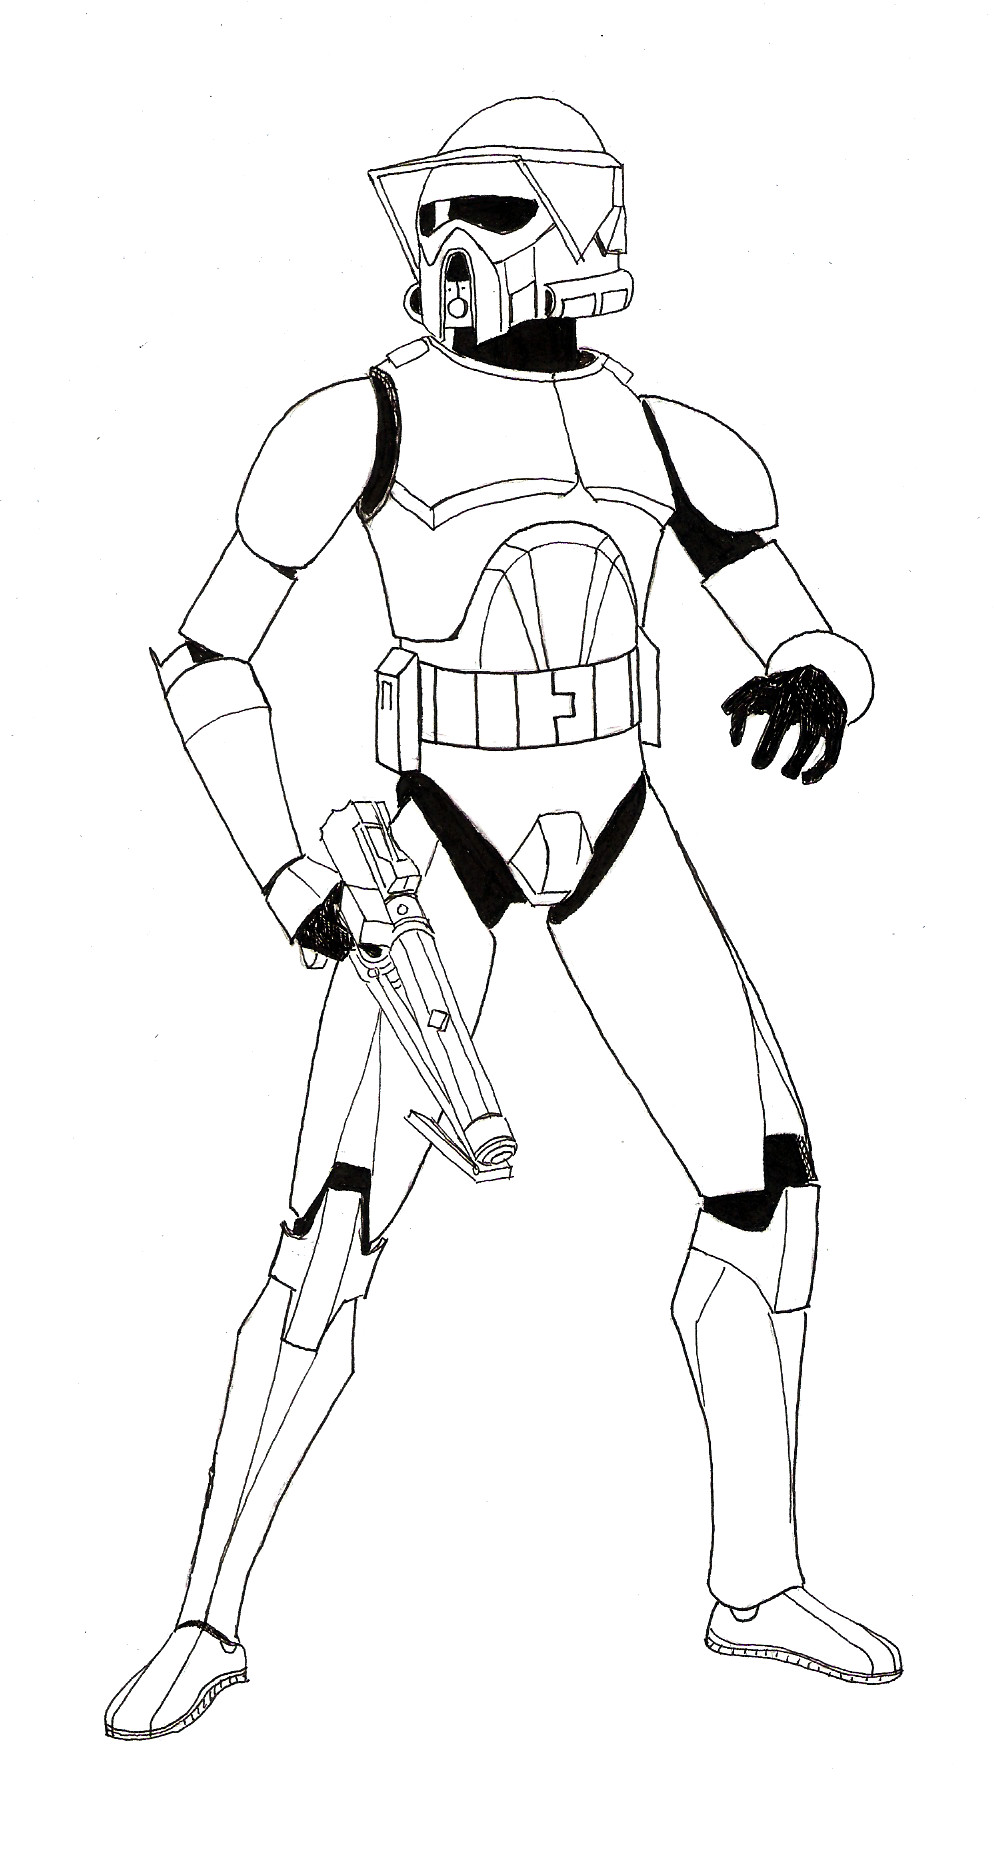 The arf trooper project 1 lineart by zaegandun on deviantart for Star wars clone wars coloring pages